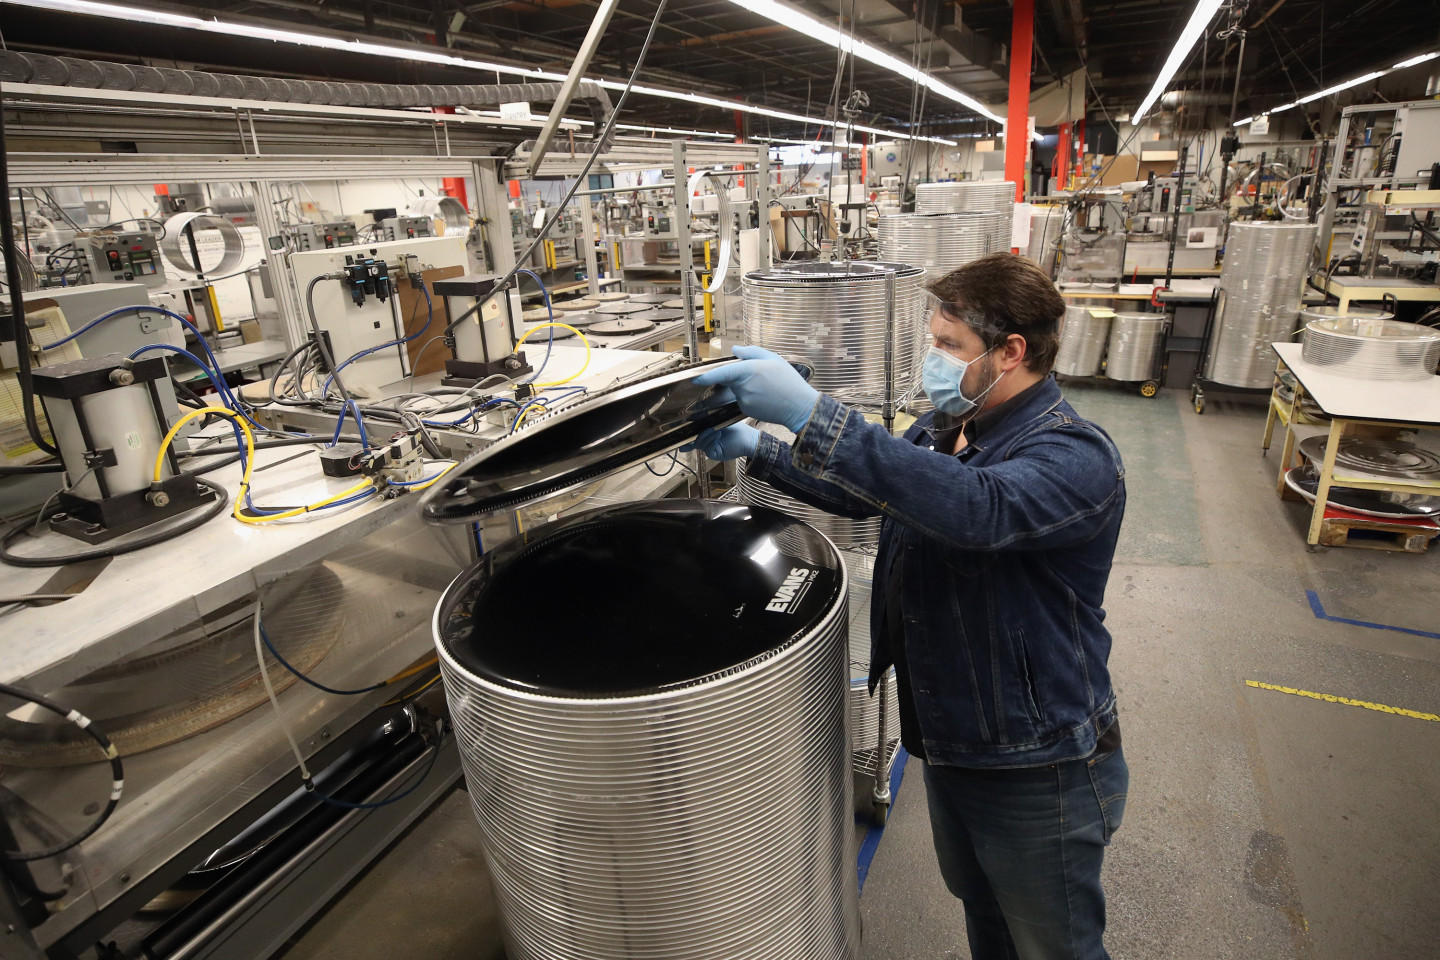 A worker assembles a product in a manufacturing facility.